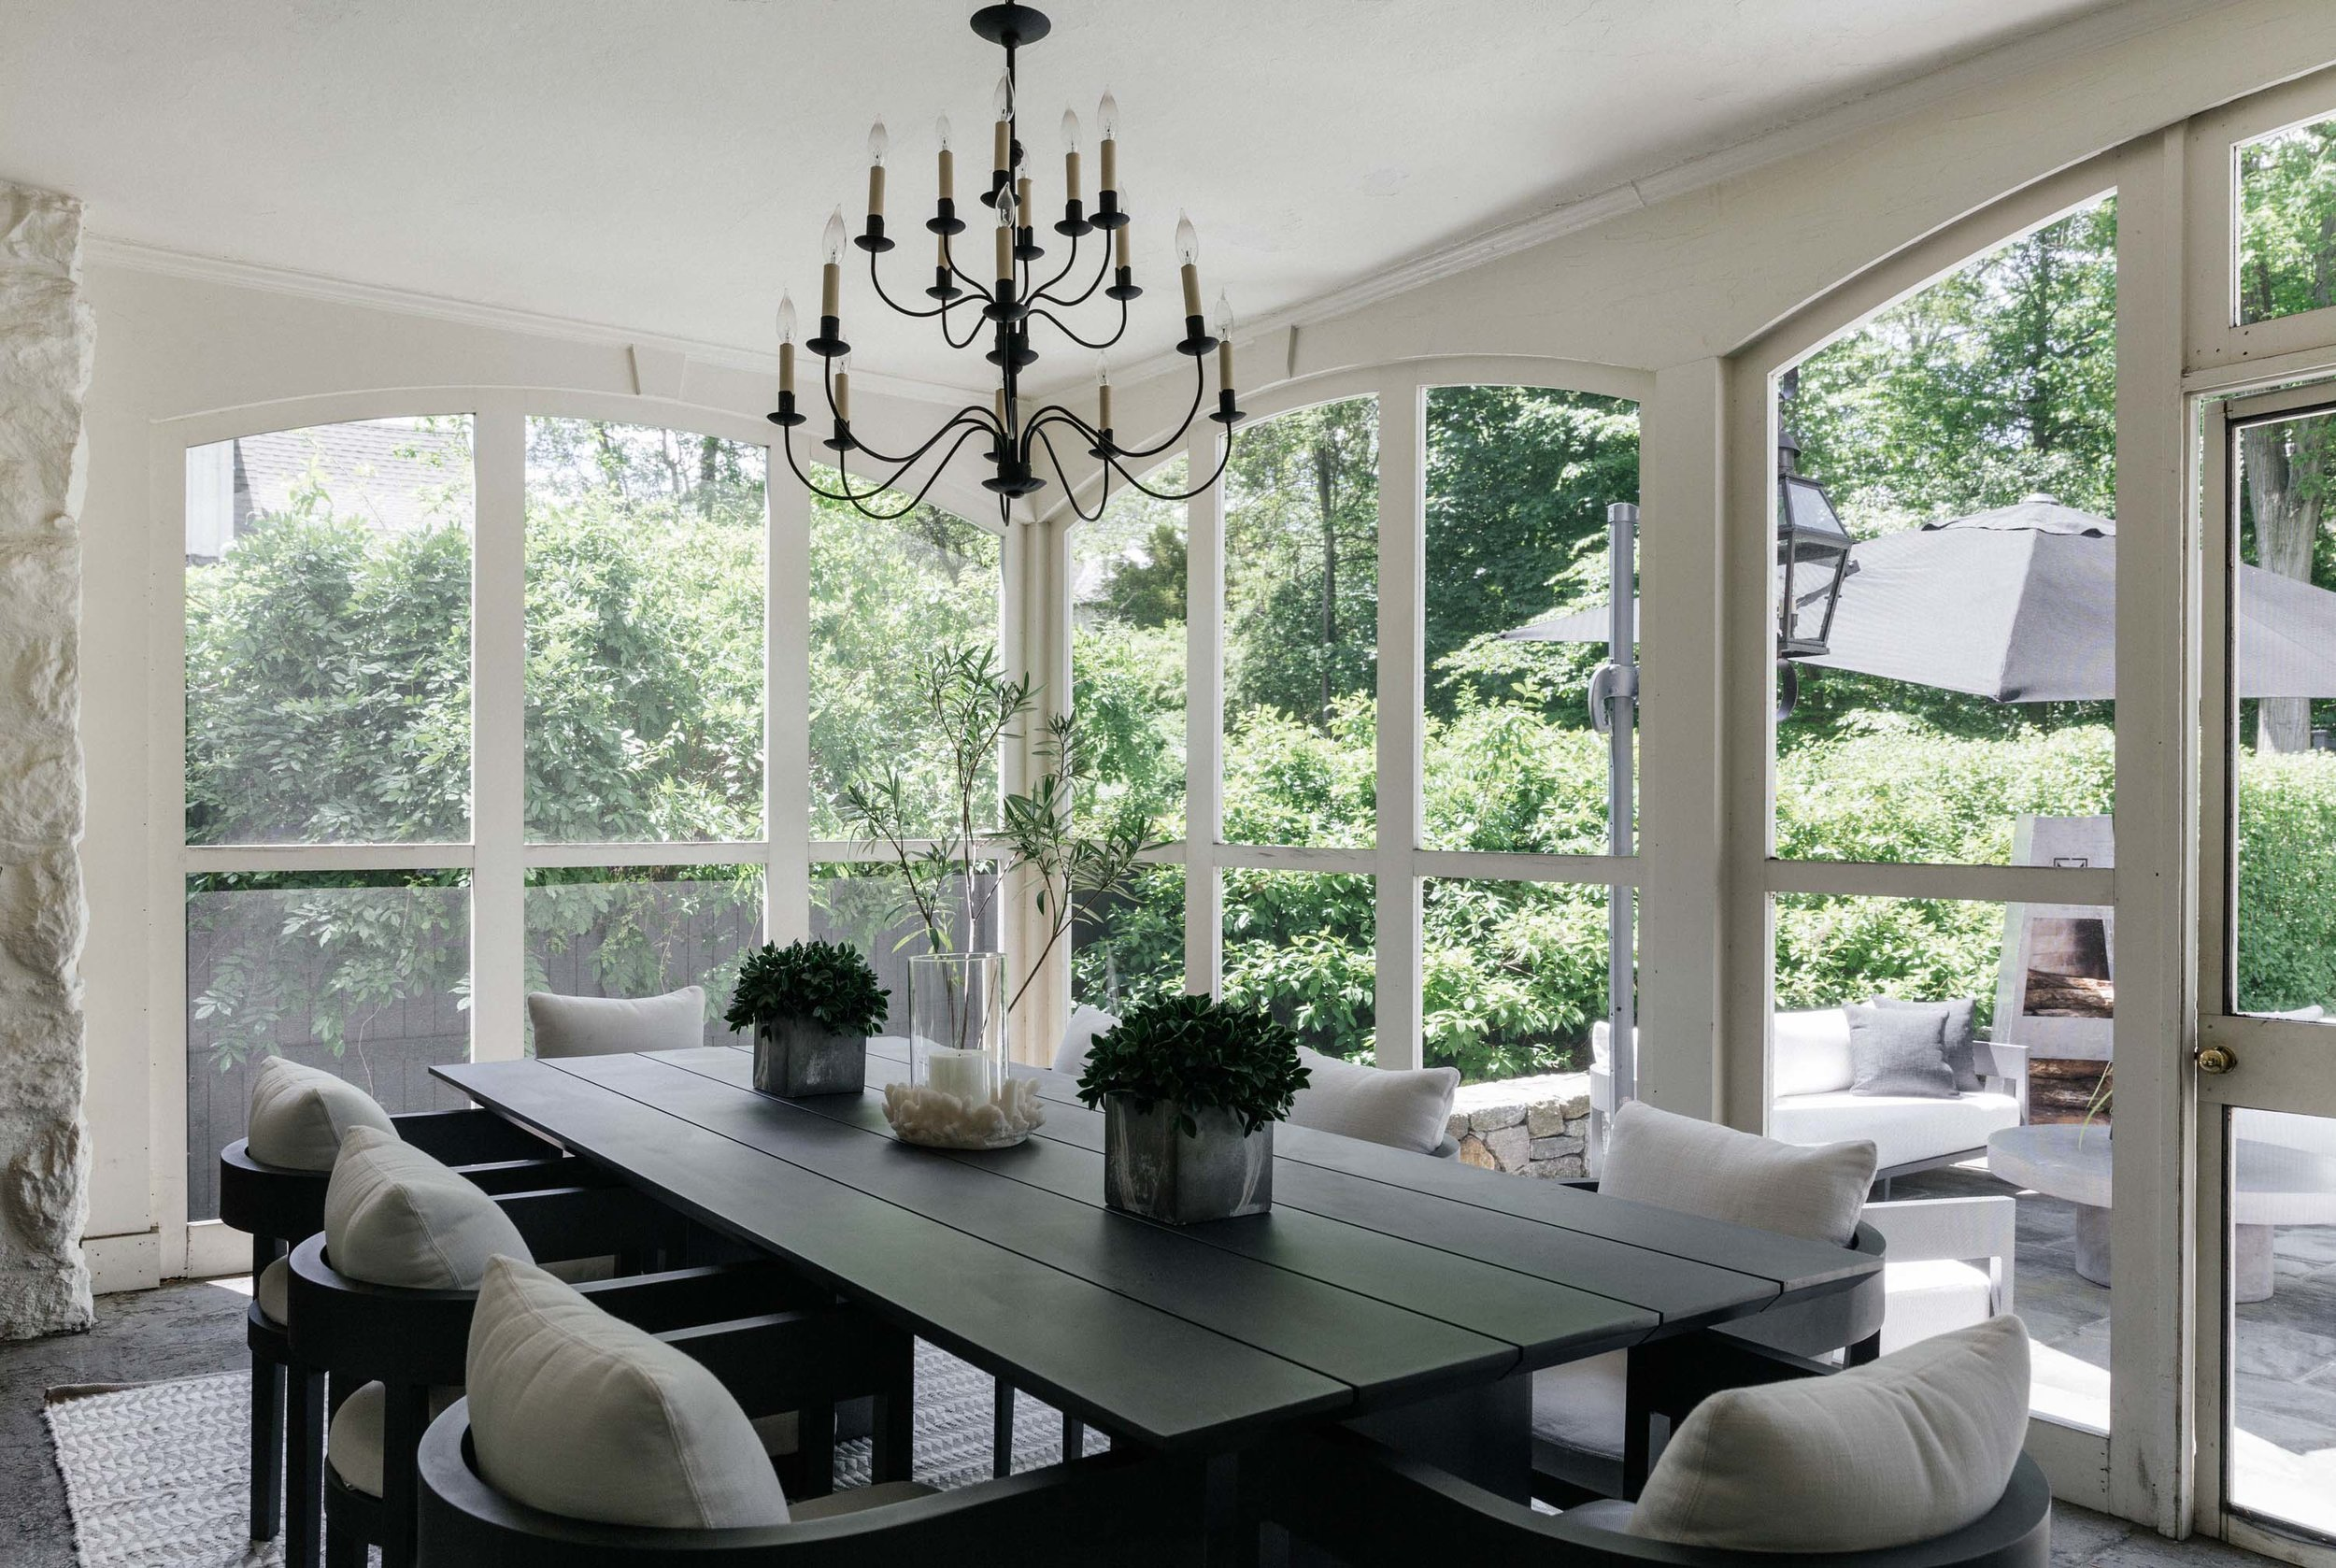 Modern dining room with garden view